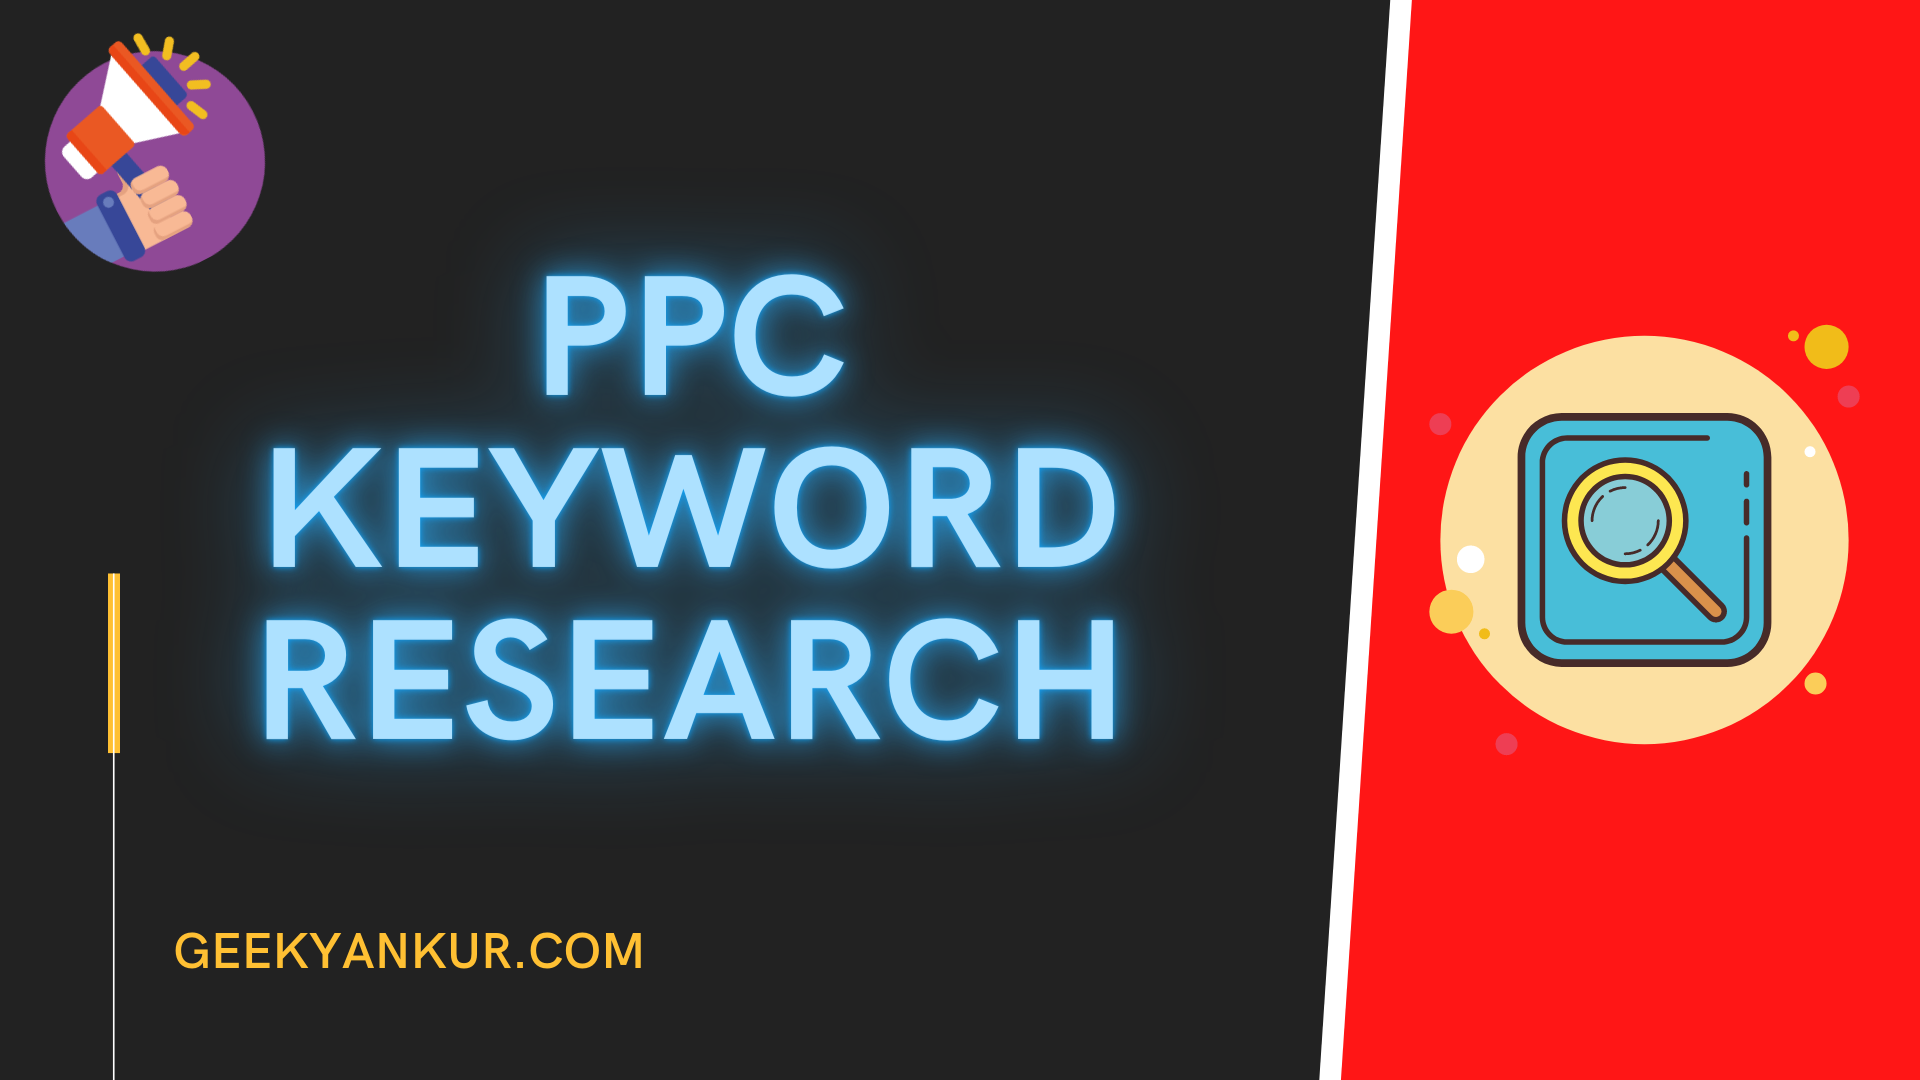 PPC KEYWORD RESEARCH: ALL THAT YOU SHOULD KNOW